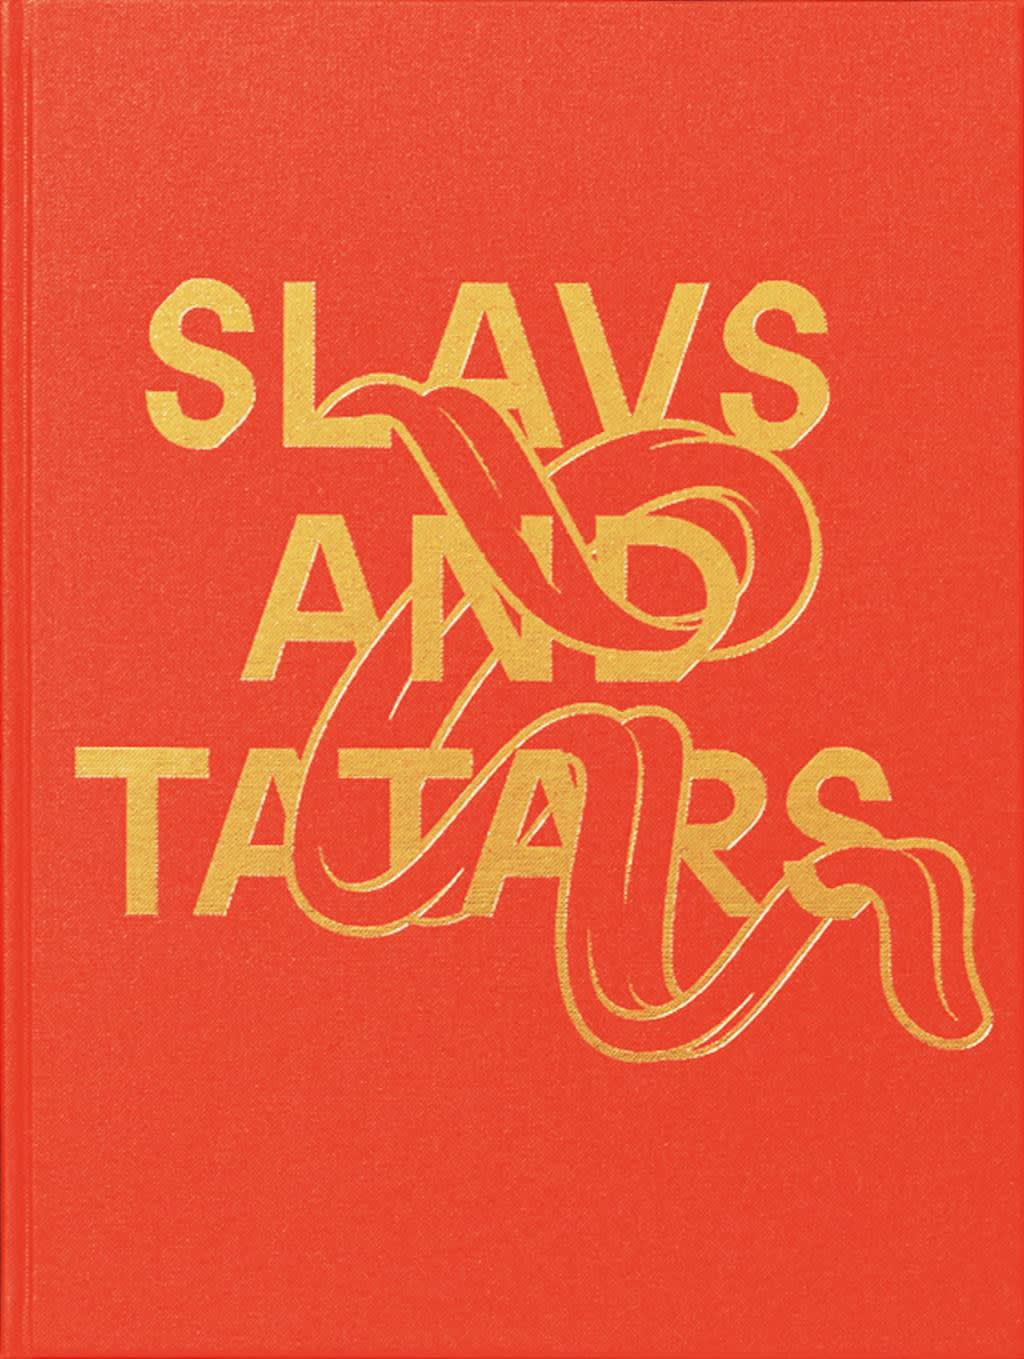 Slavs and Tatars (Mouth to Mouth)